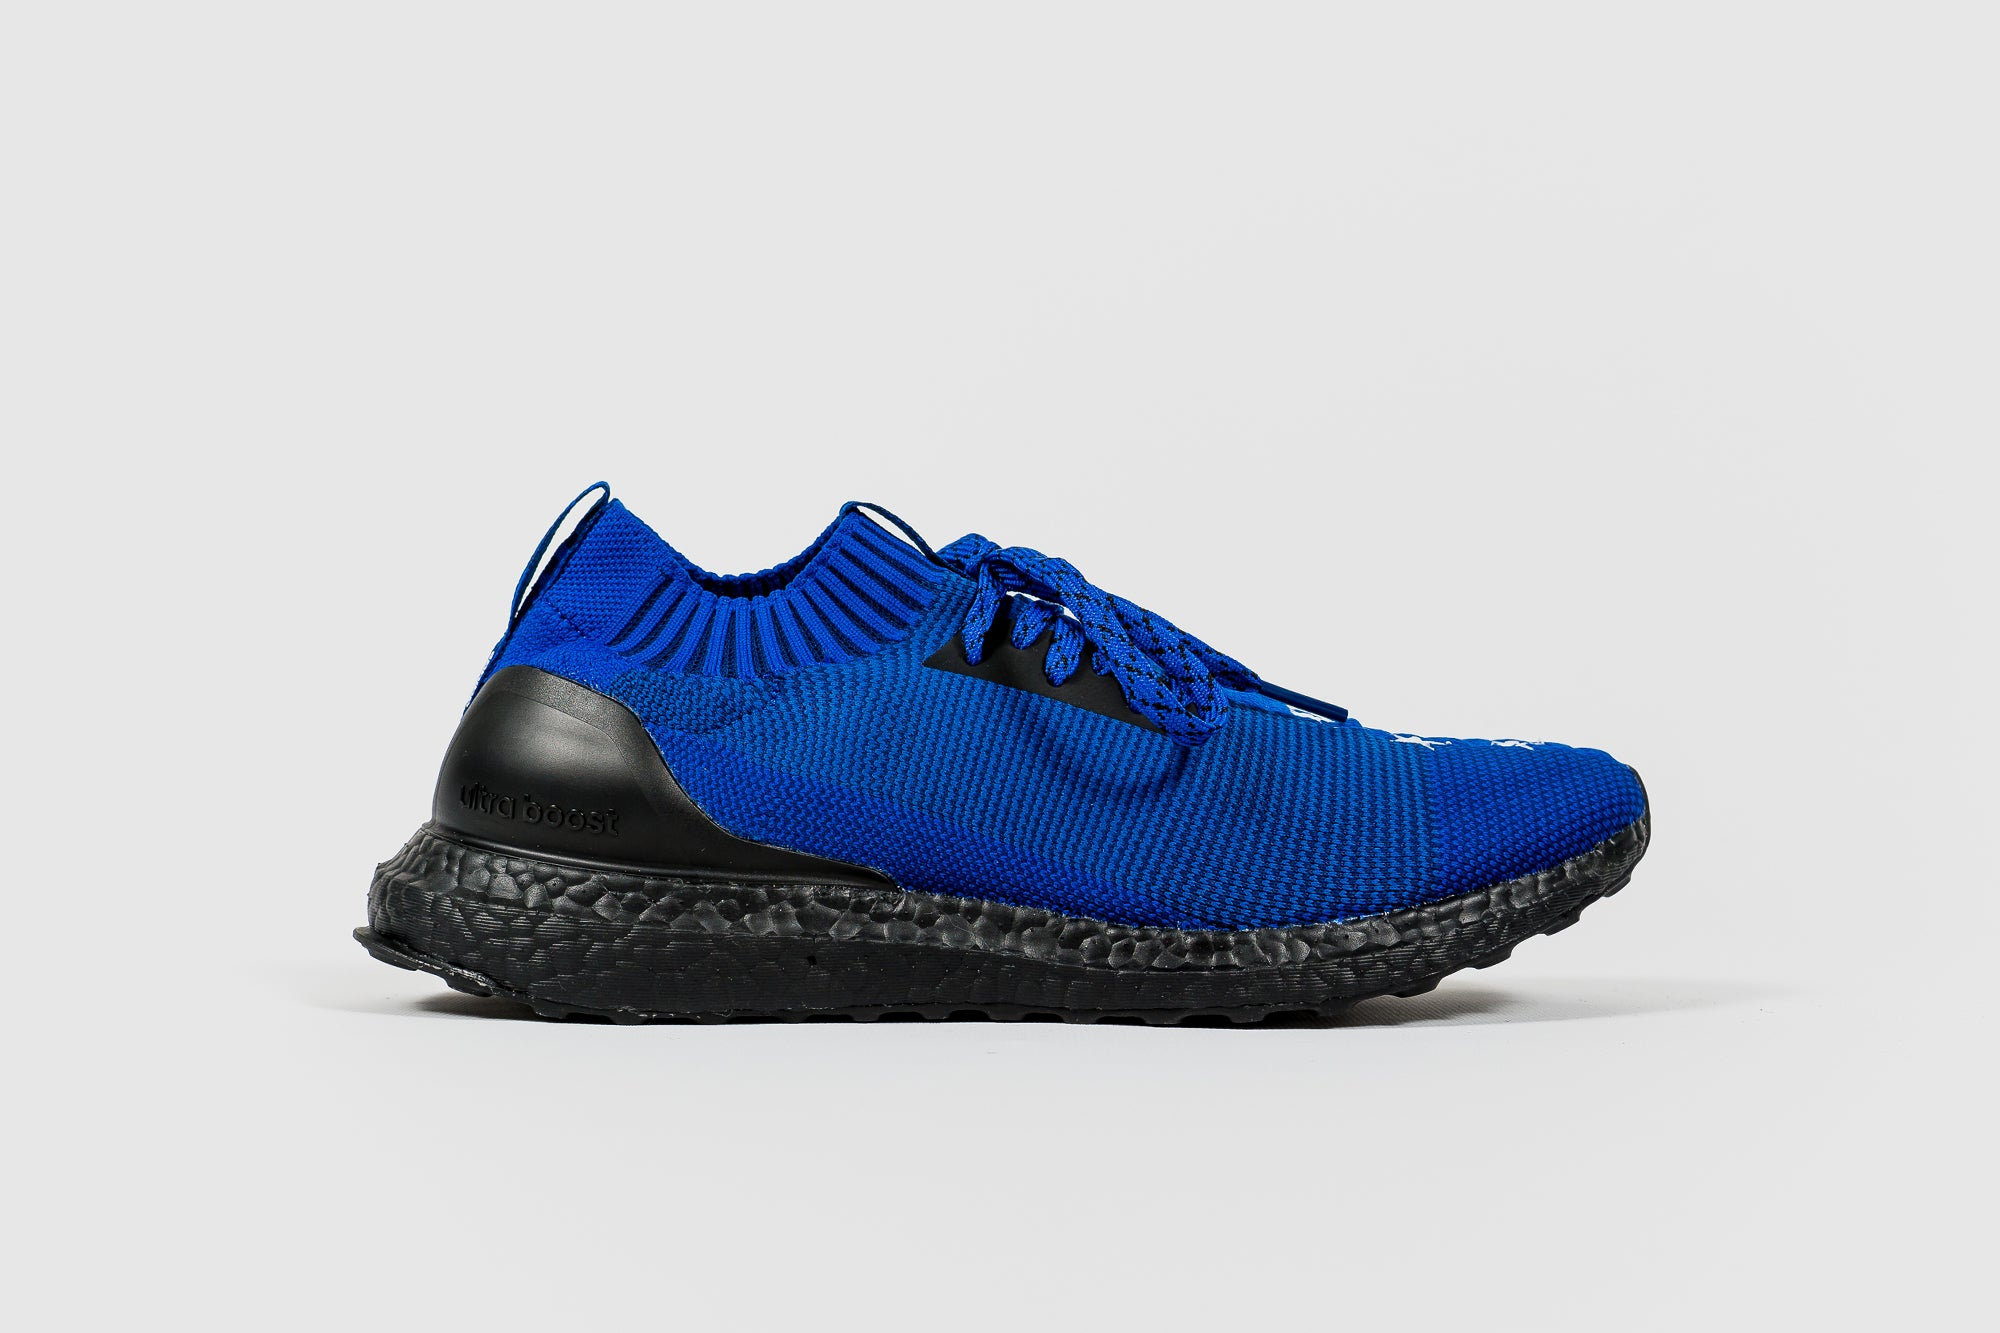 c58d8b43c9ebe ADIDAS ULTRABOOST UNCAGED X ETUDES – PACKER SHOES